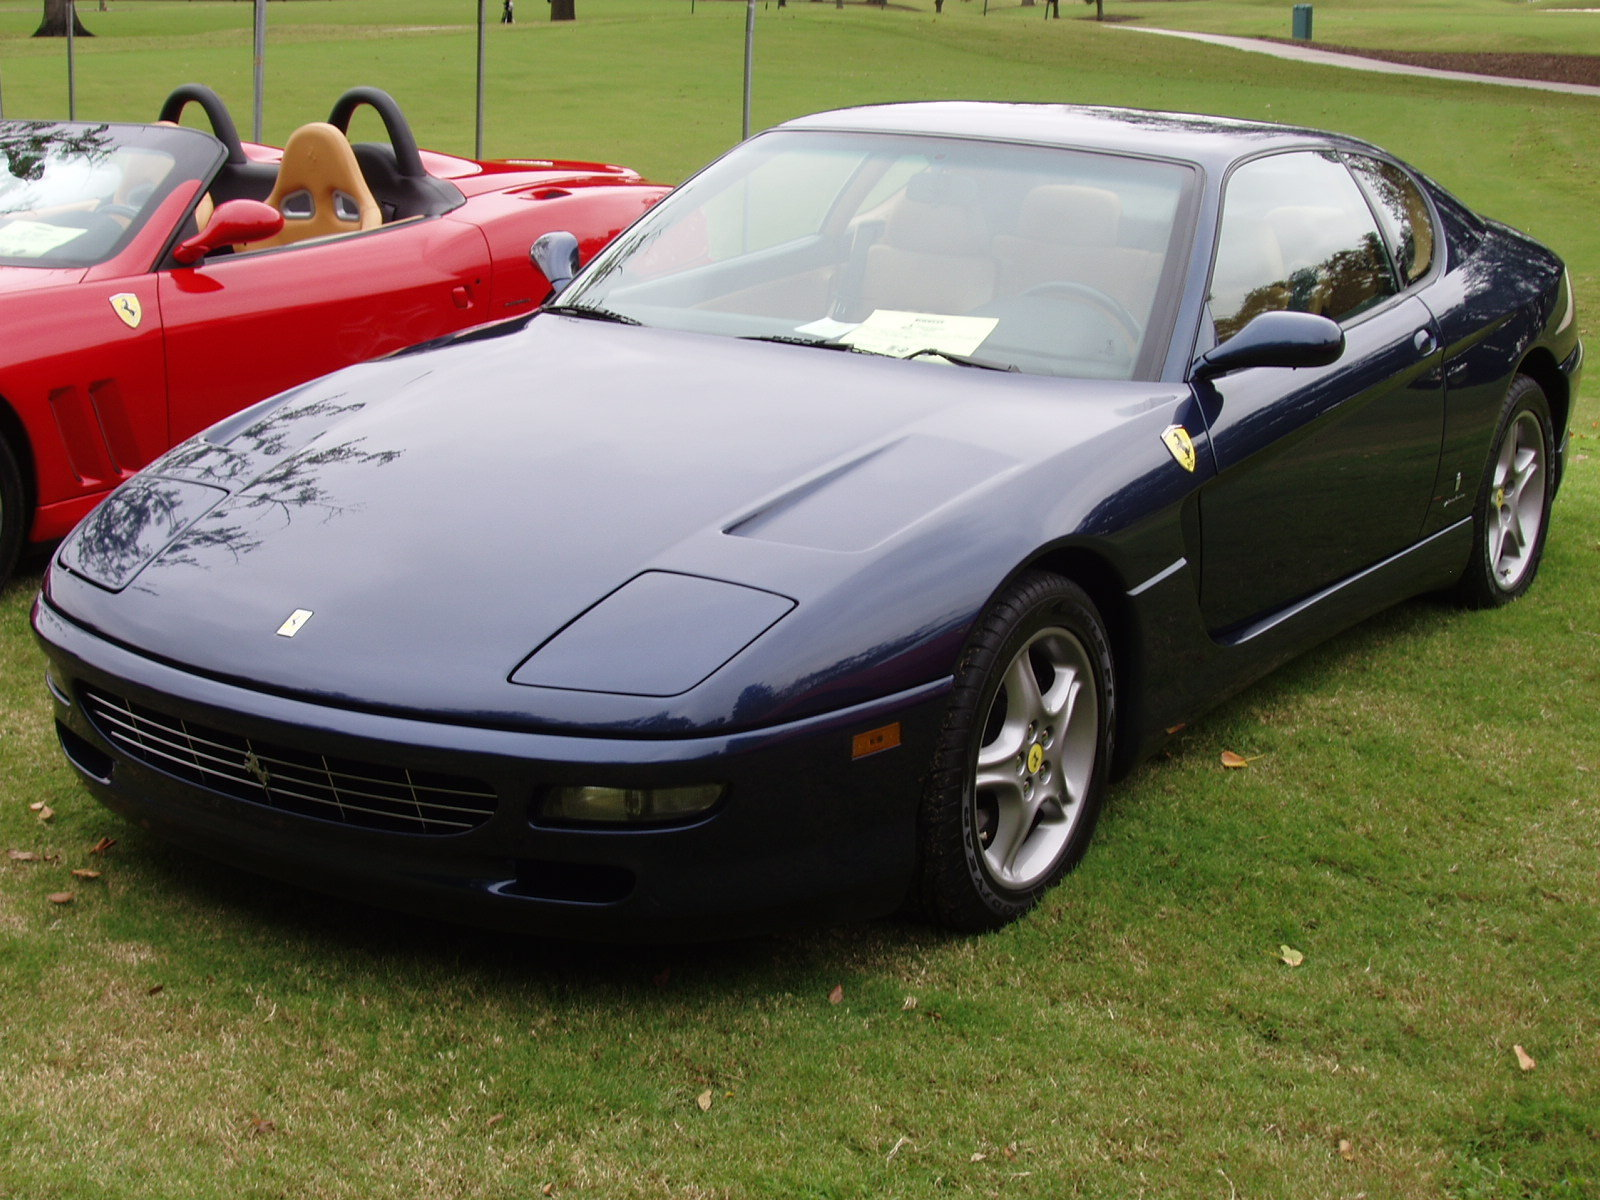 1992 1997 ferrari 456 gt picture 38386 car review top speed. Black Bedroom Furniture Sets. Home Design Ideas